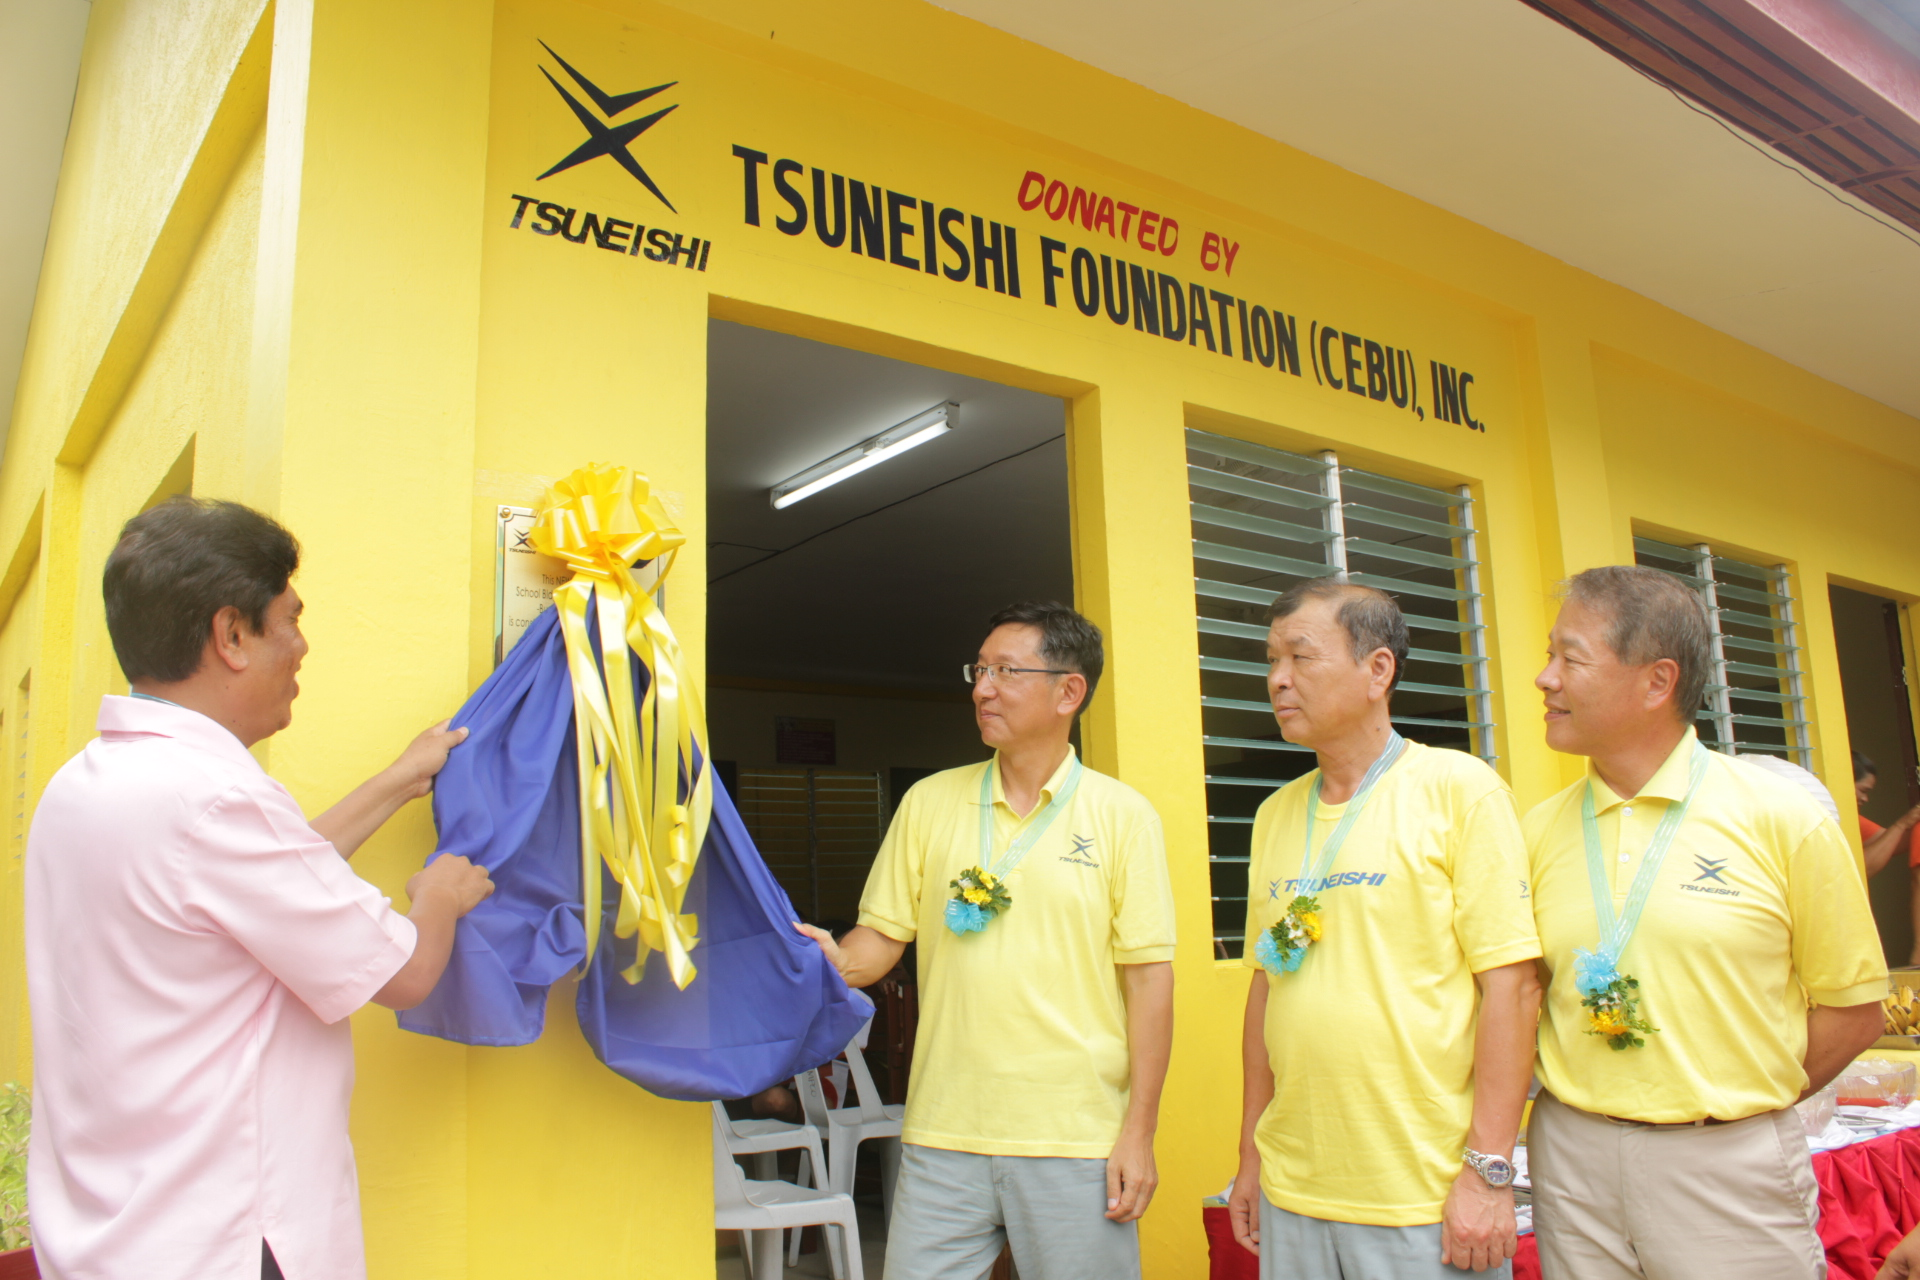 Donation to build a new classroom at Buanoy Elementary School~TSUNEISHI FOUNDATION (CEBU), Inc.~